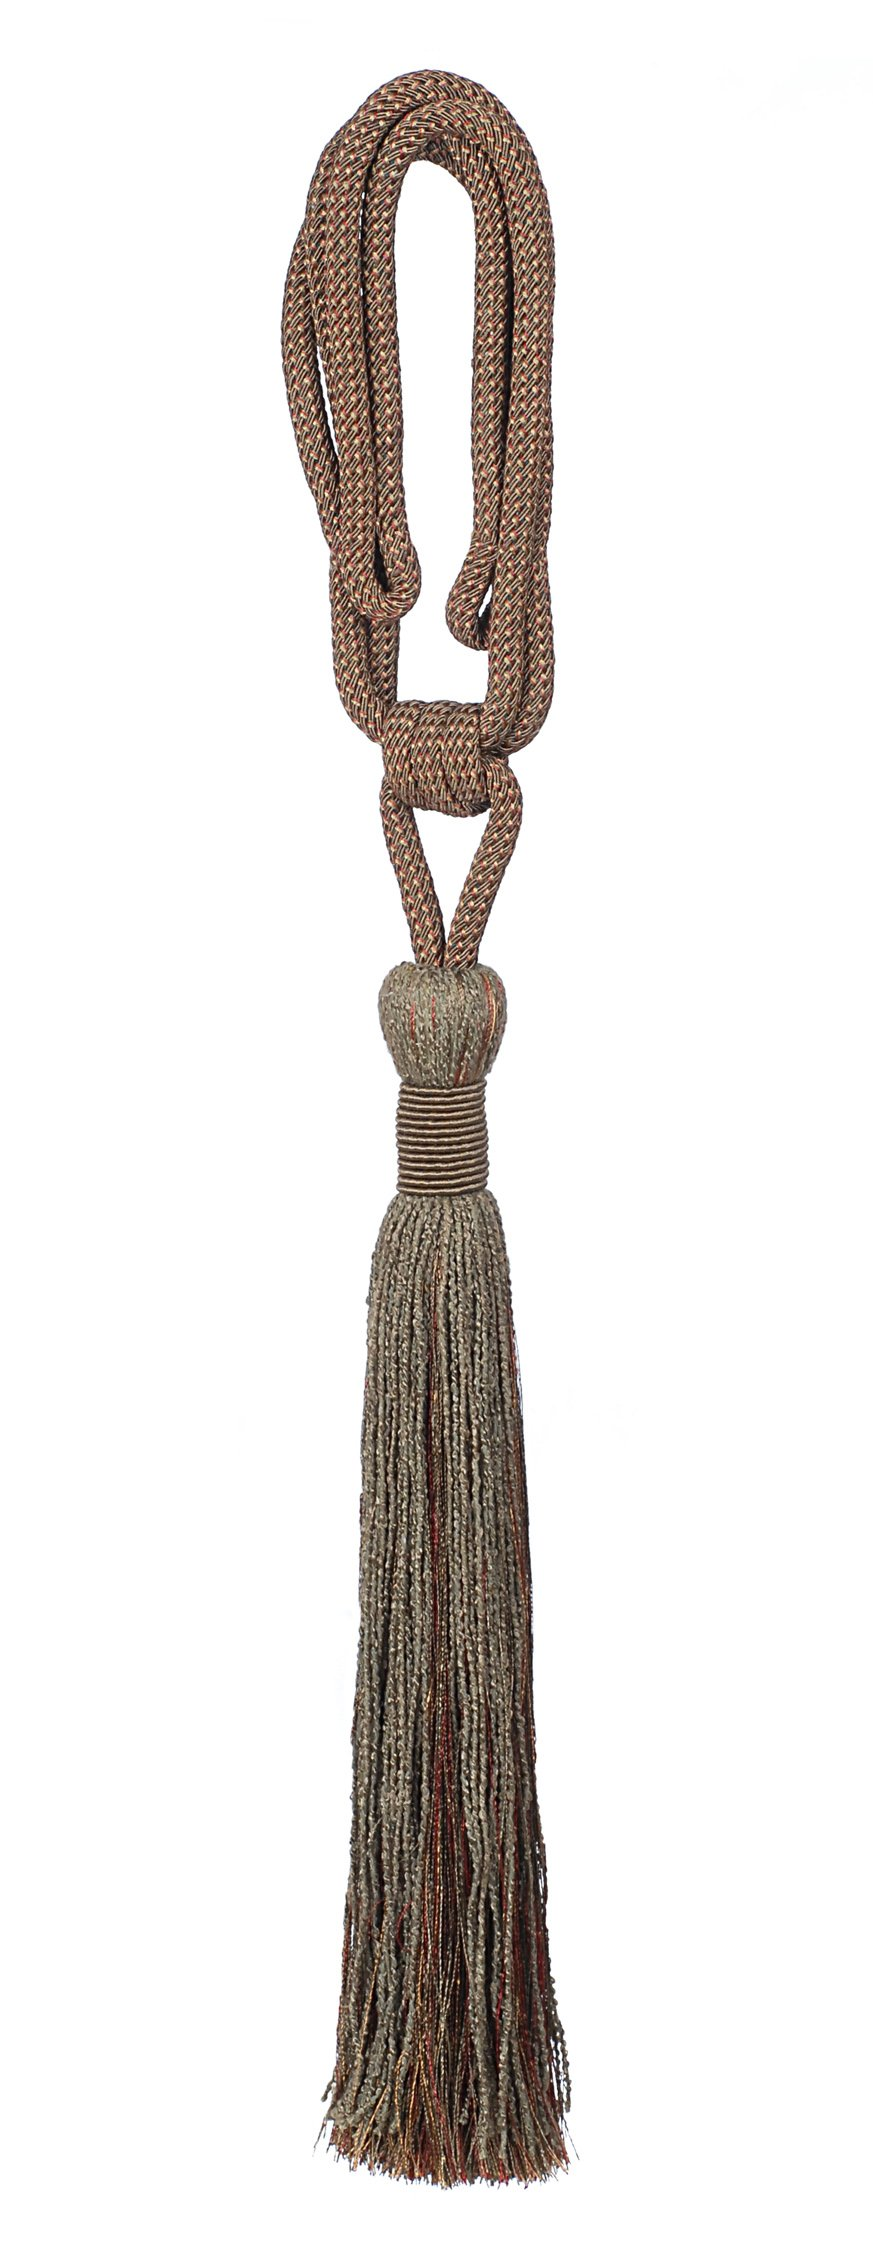 India House 79978 Vedi Tieback with 15-Inch Single Tassel and 30-Inch Cord, Tuscany